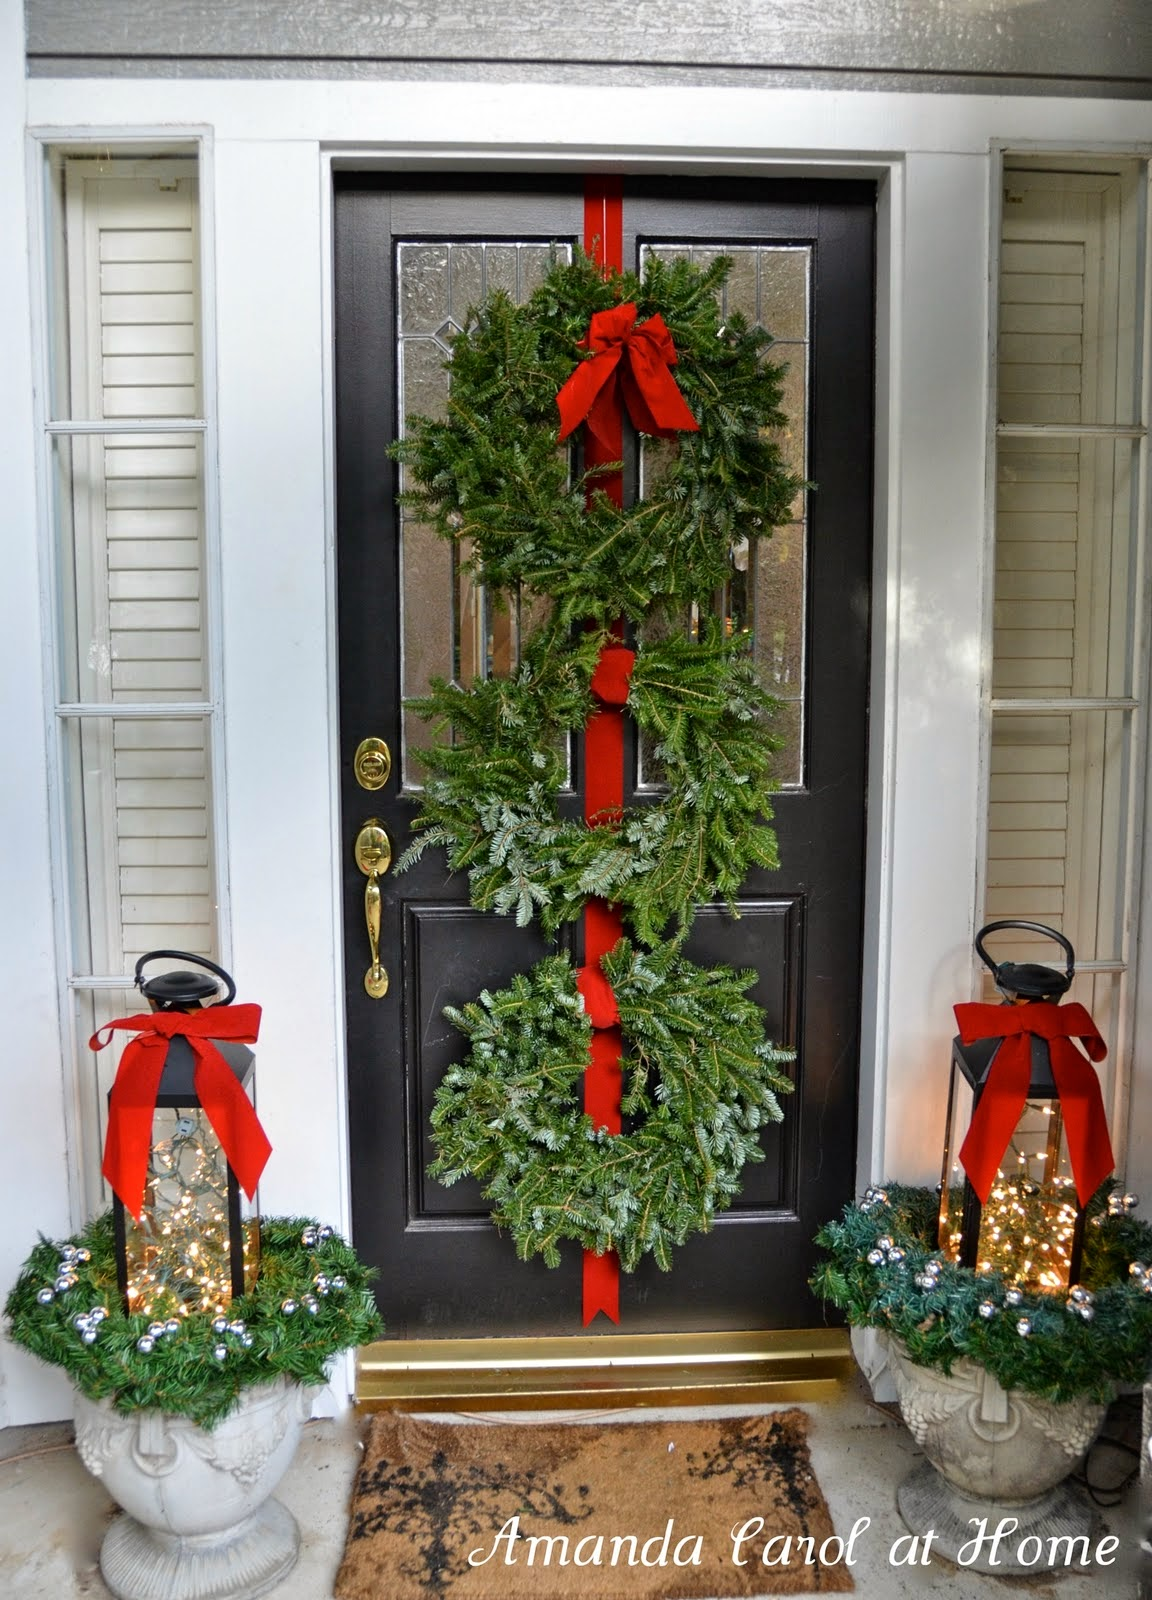 Front porch decorating ideas pictures : front porch decorating ...